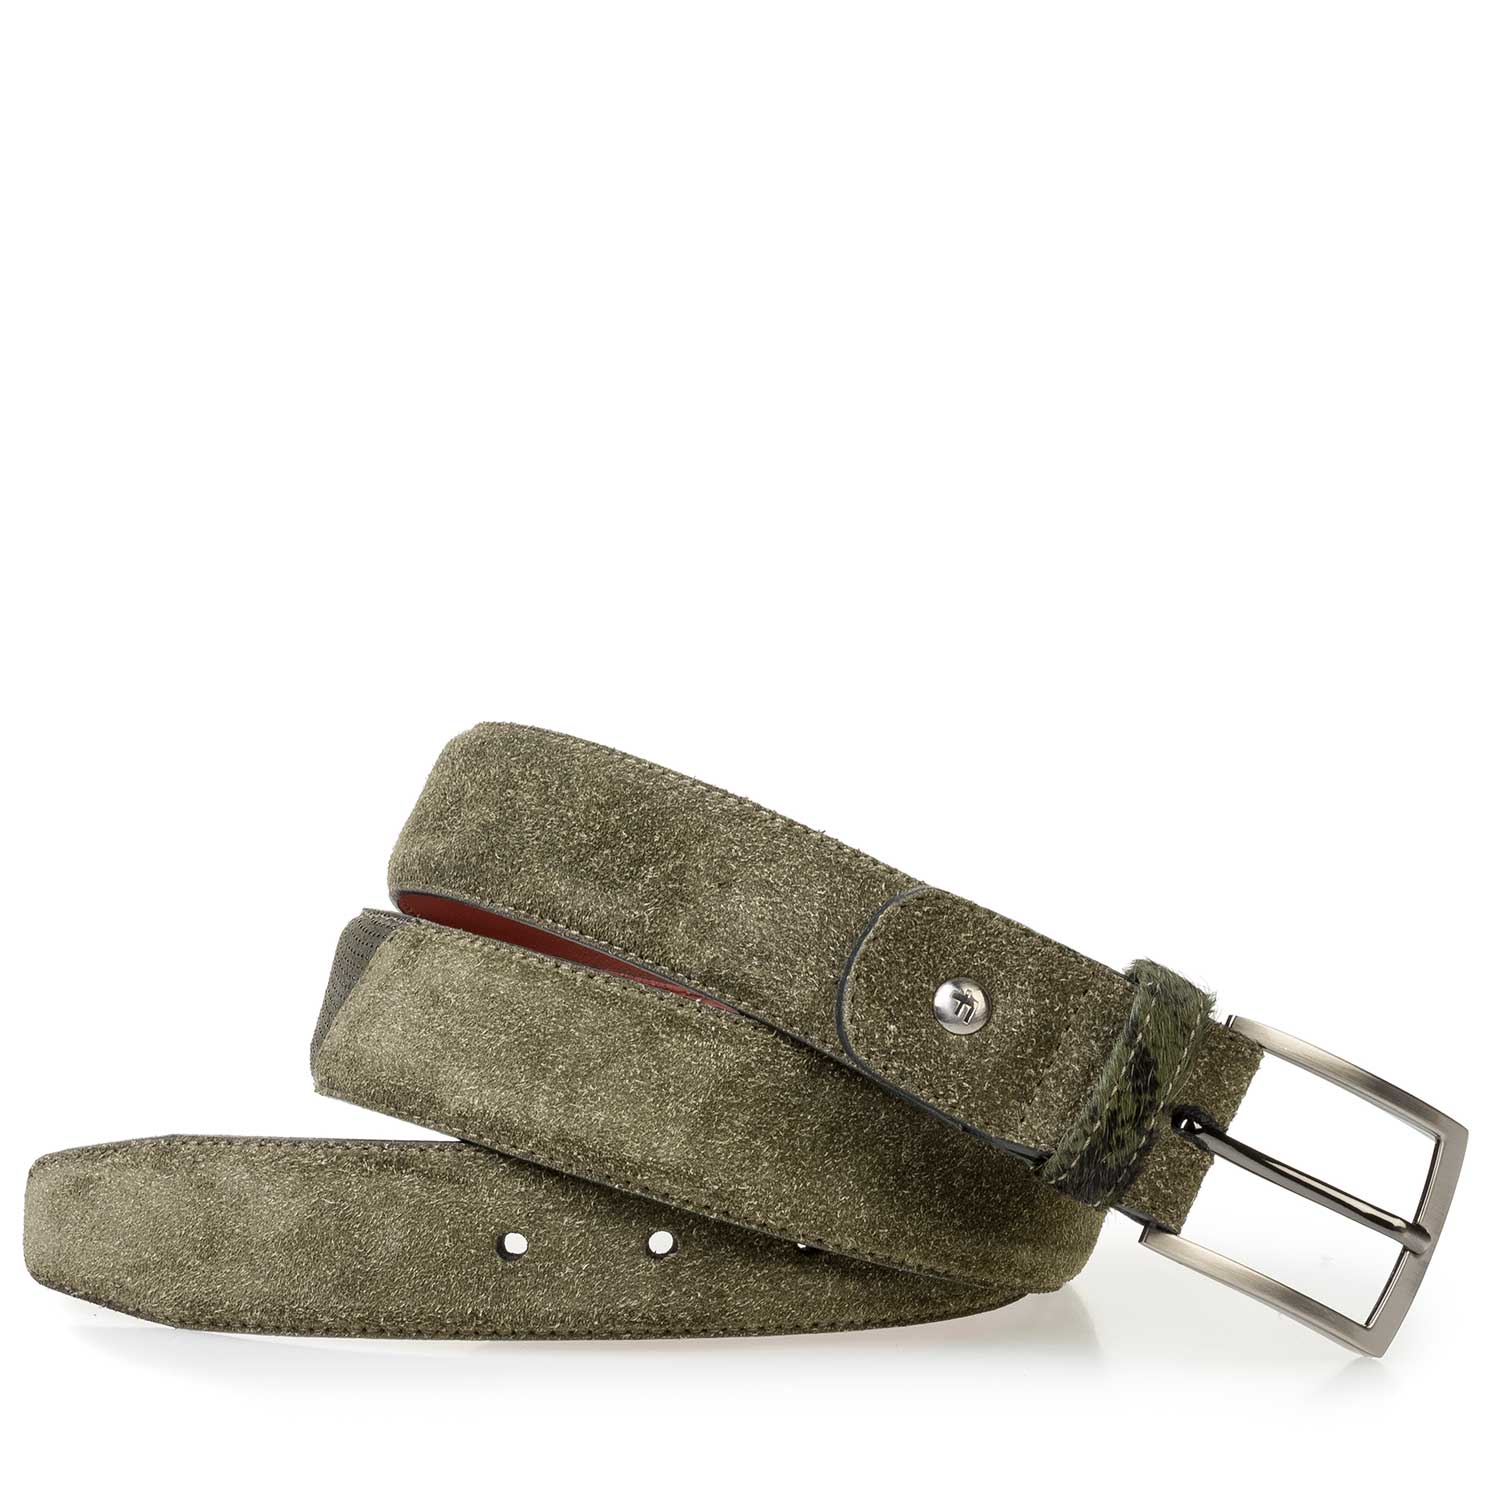 75188/28 - Green rough suede leather belt